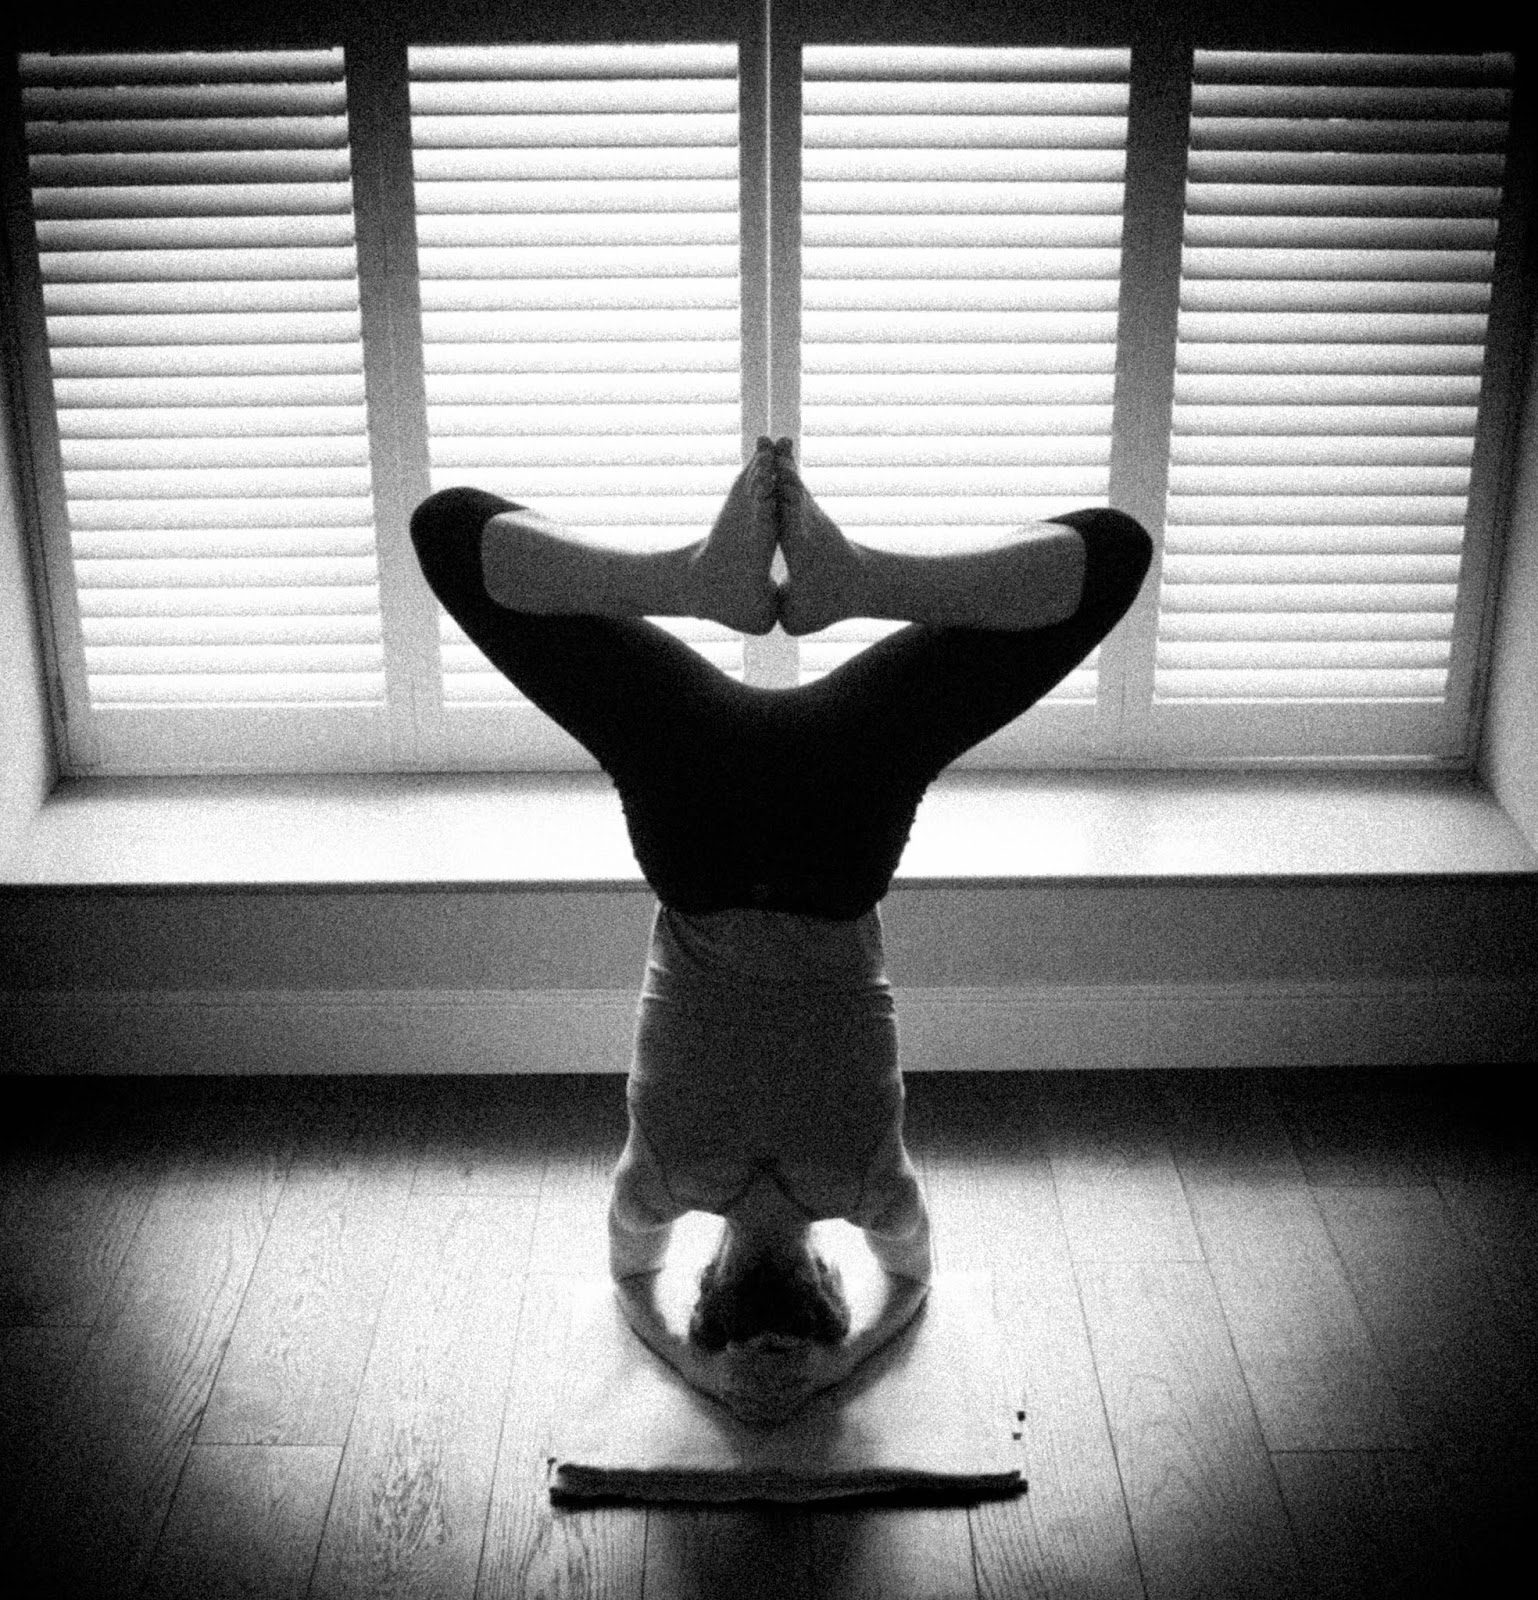 Yoga Pose, Toward Yoga, Yoga bishops Stortford, Yoga Bishop's Stortford, Yoga Herts, TowardYoga, beginner's yoga, Iyengar yoga, yoga essex